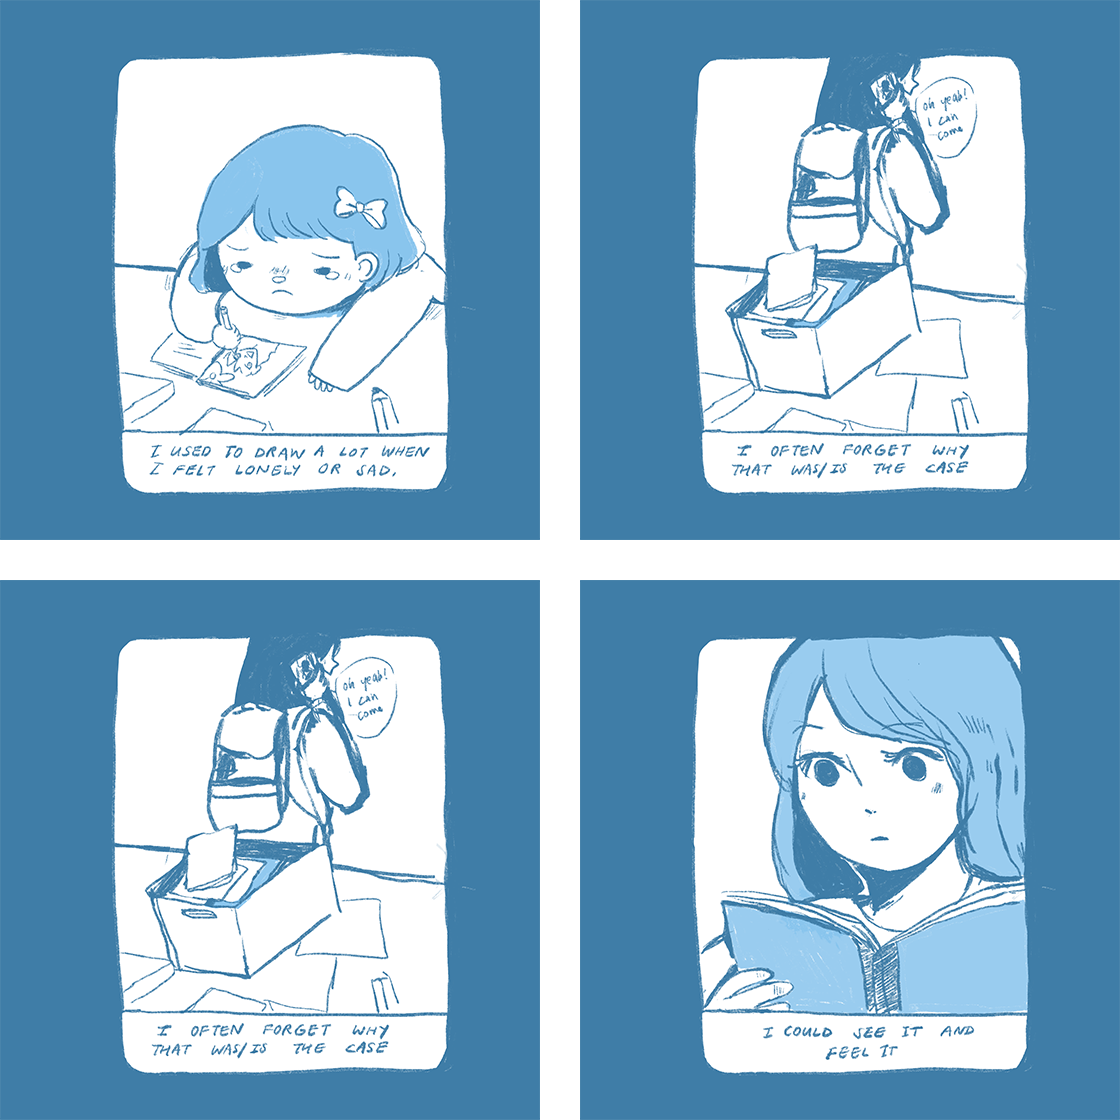 """Four panels of a comic by Gu. The text: """"I used to draw a lot when I felt lonely or sad. I often forget why that was/is the case. I could see it and feel it."""""""